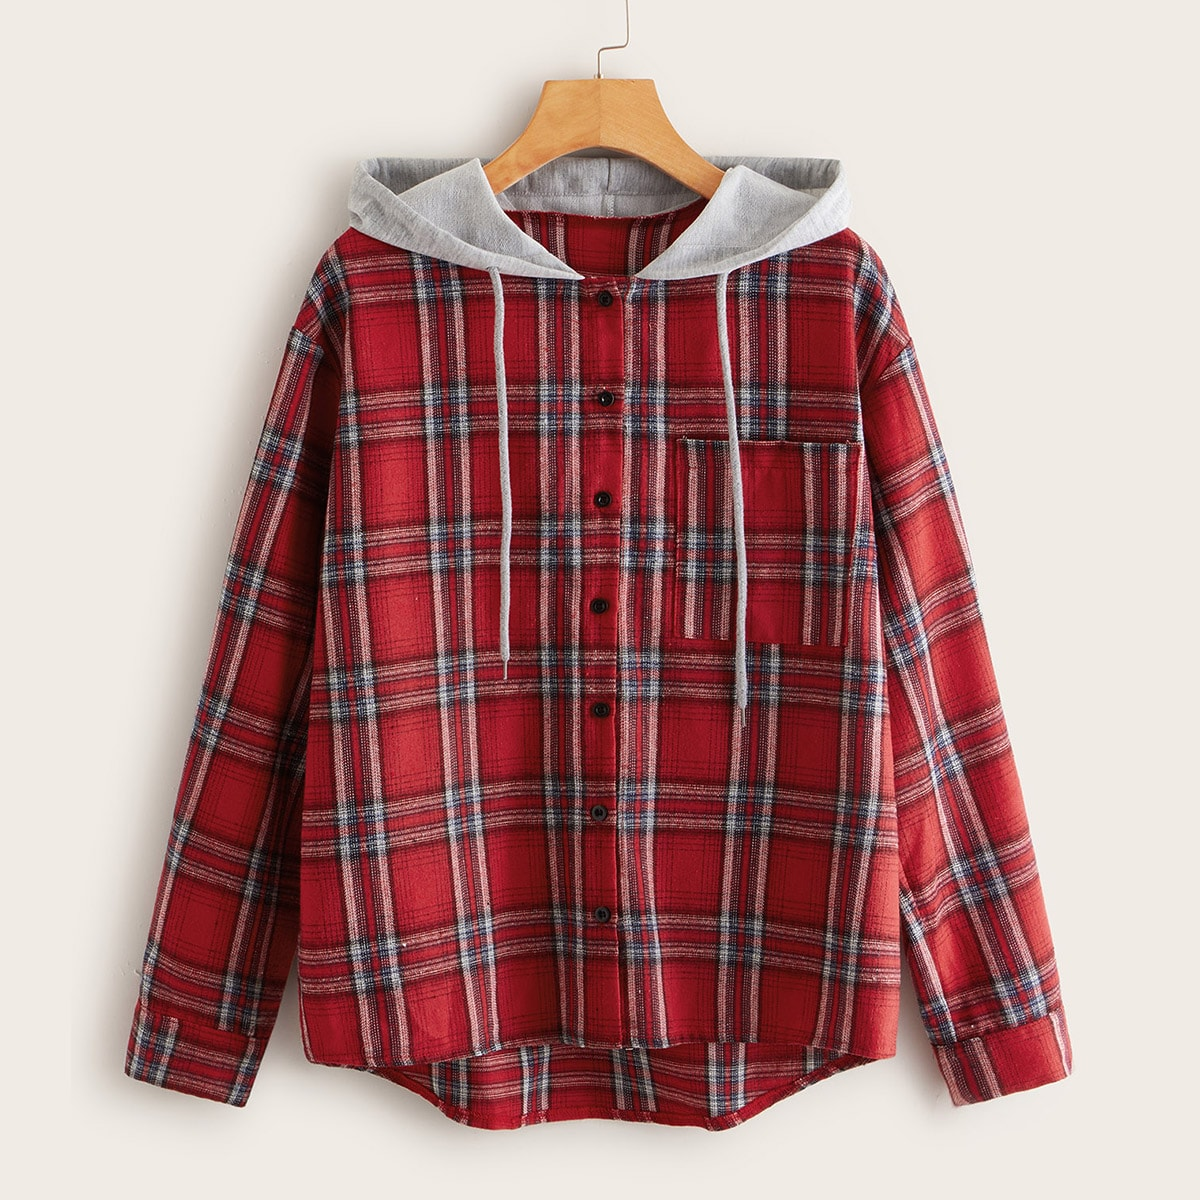 Plaid Pocket Front Hooded Blouse in Red by ROMWE on GOOFASH